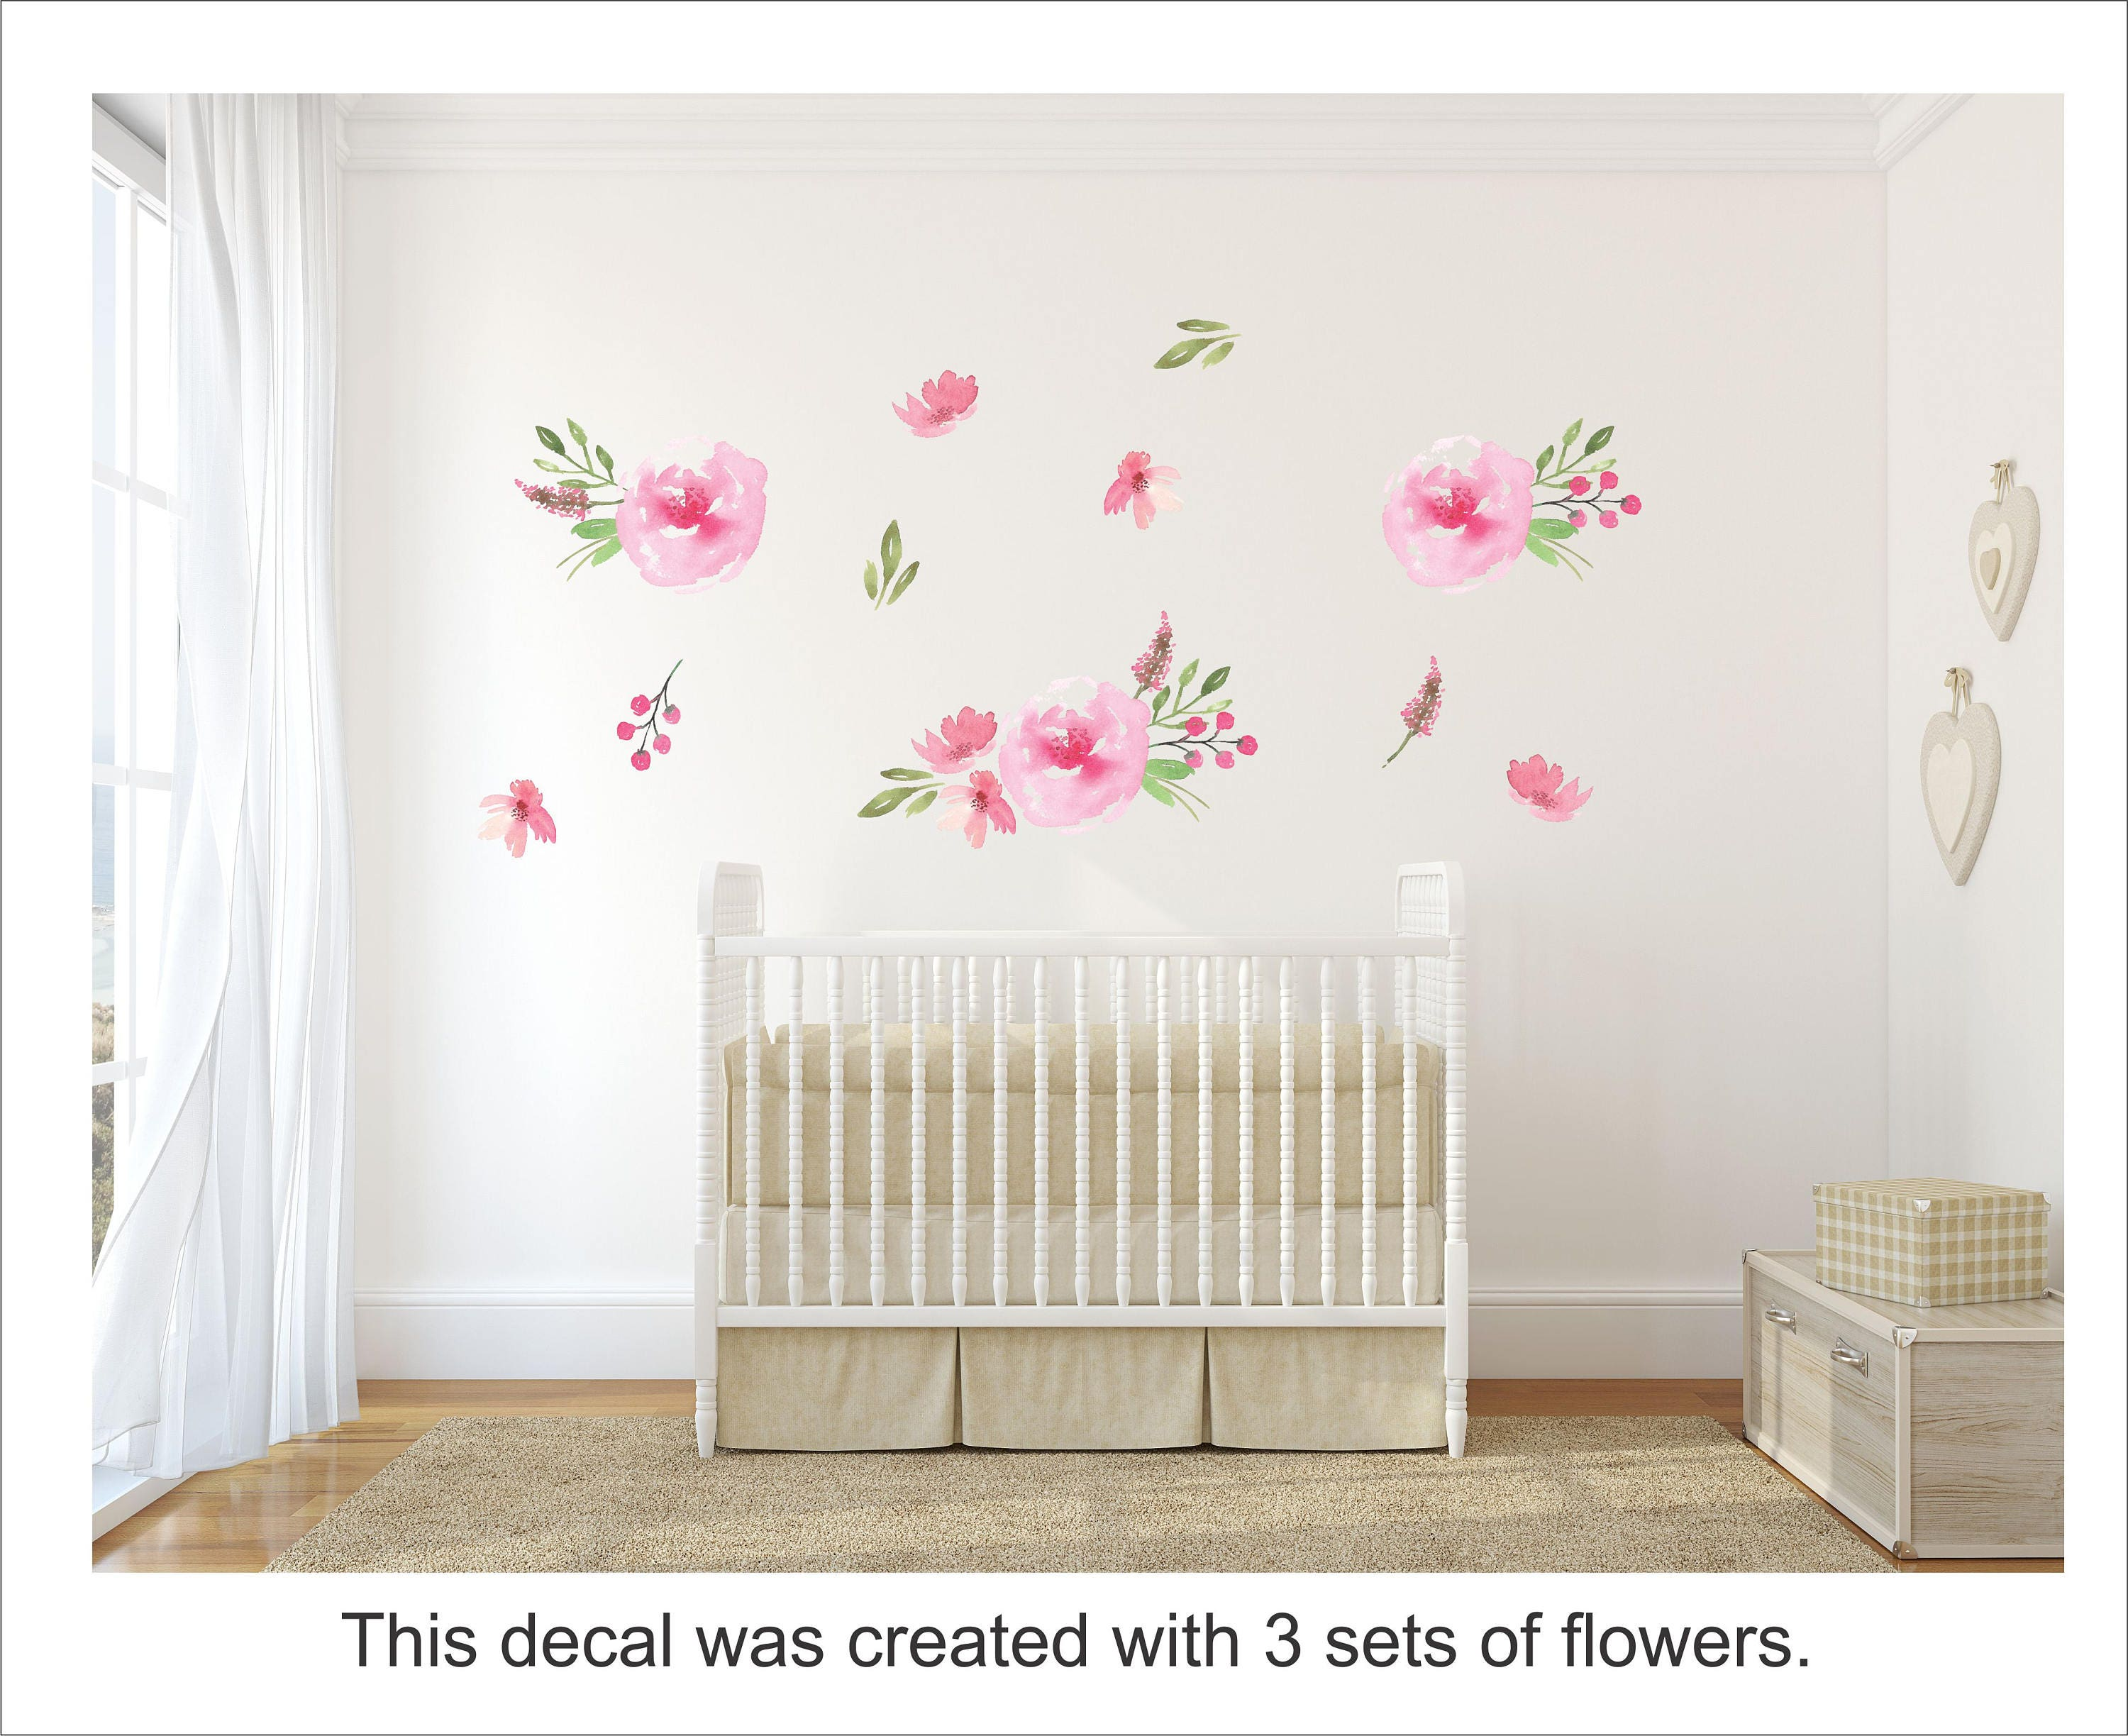 Floral Wallpaper for Renters / Removable and Reusable Fabric Floral ...